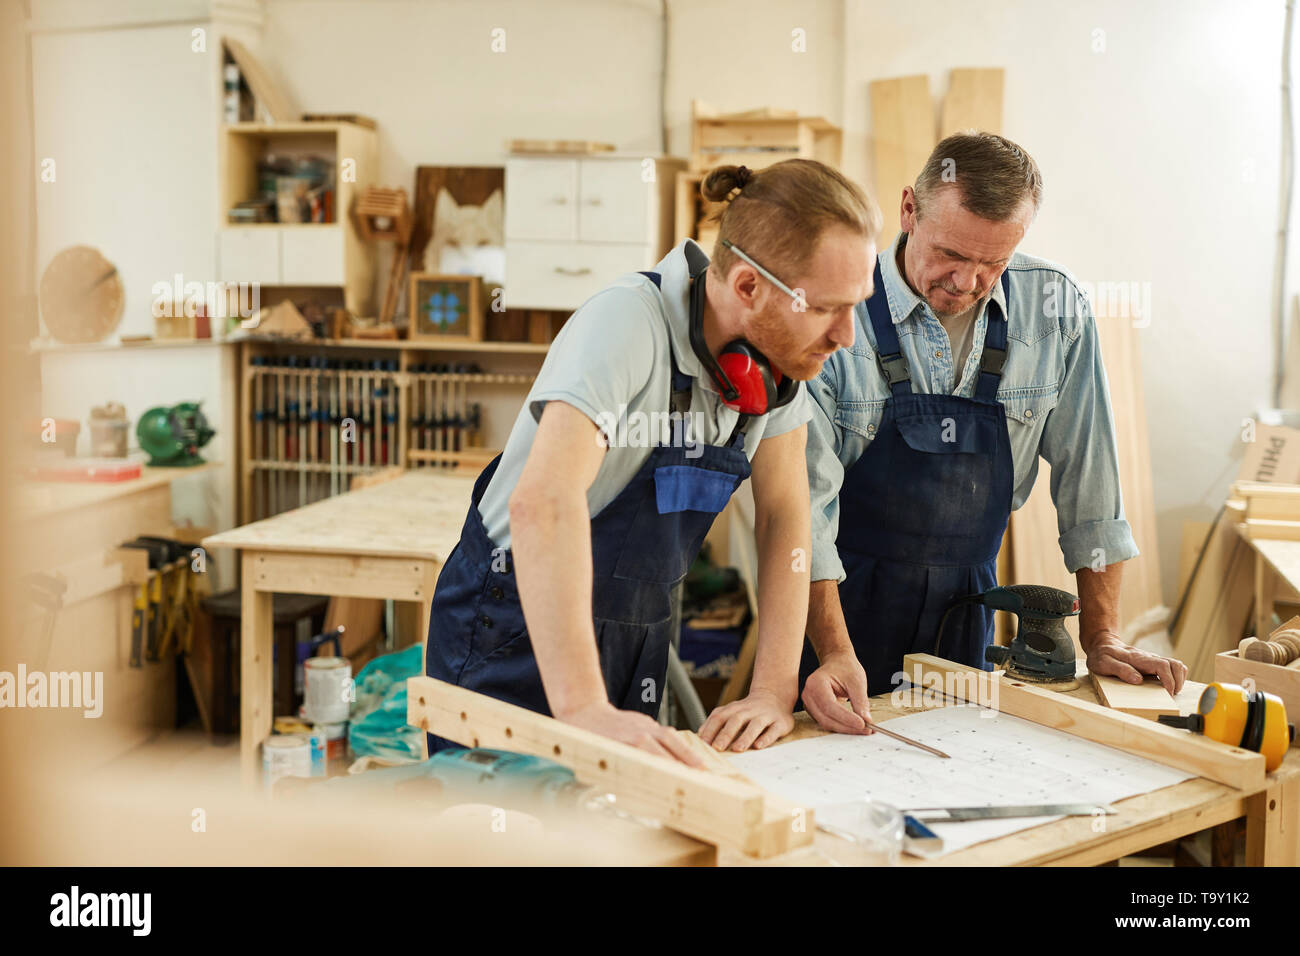 Portrait of senior carpenter teaching apprentice  while working together  in joinery workshop, copy space - Stock Image